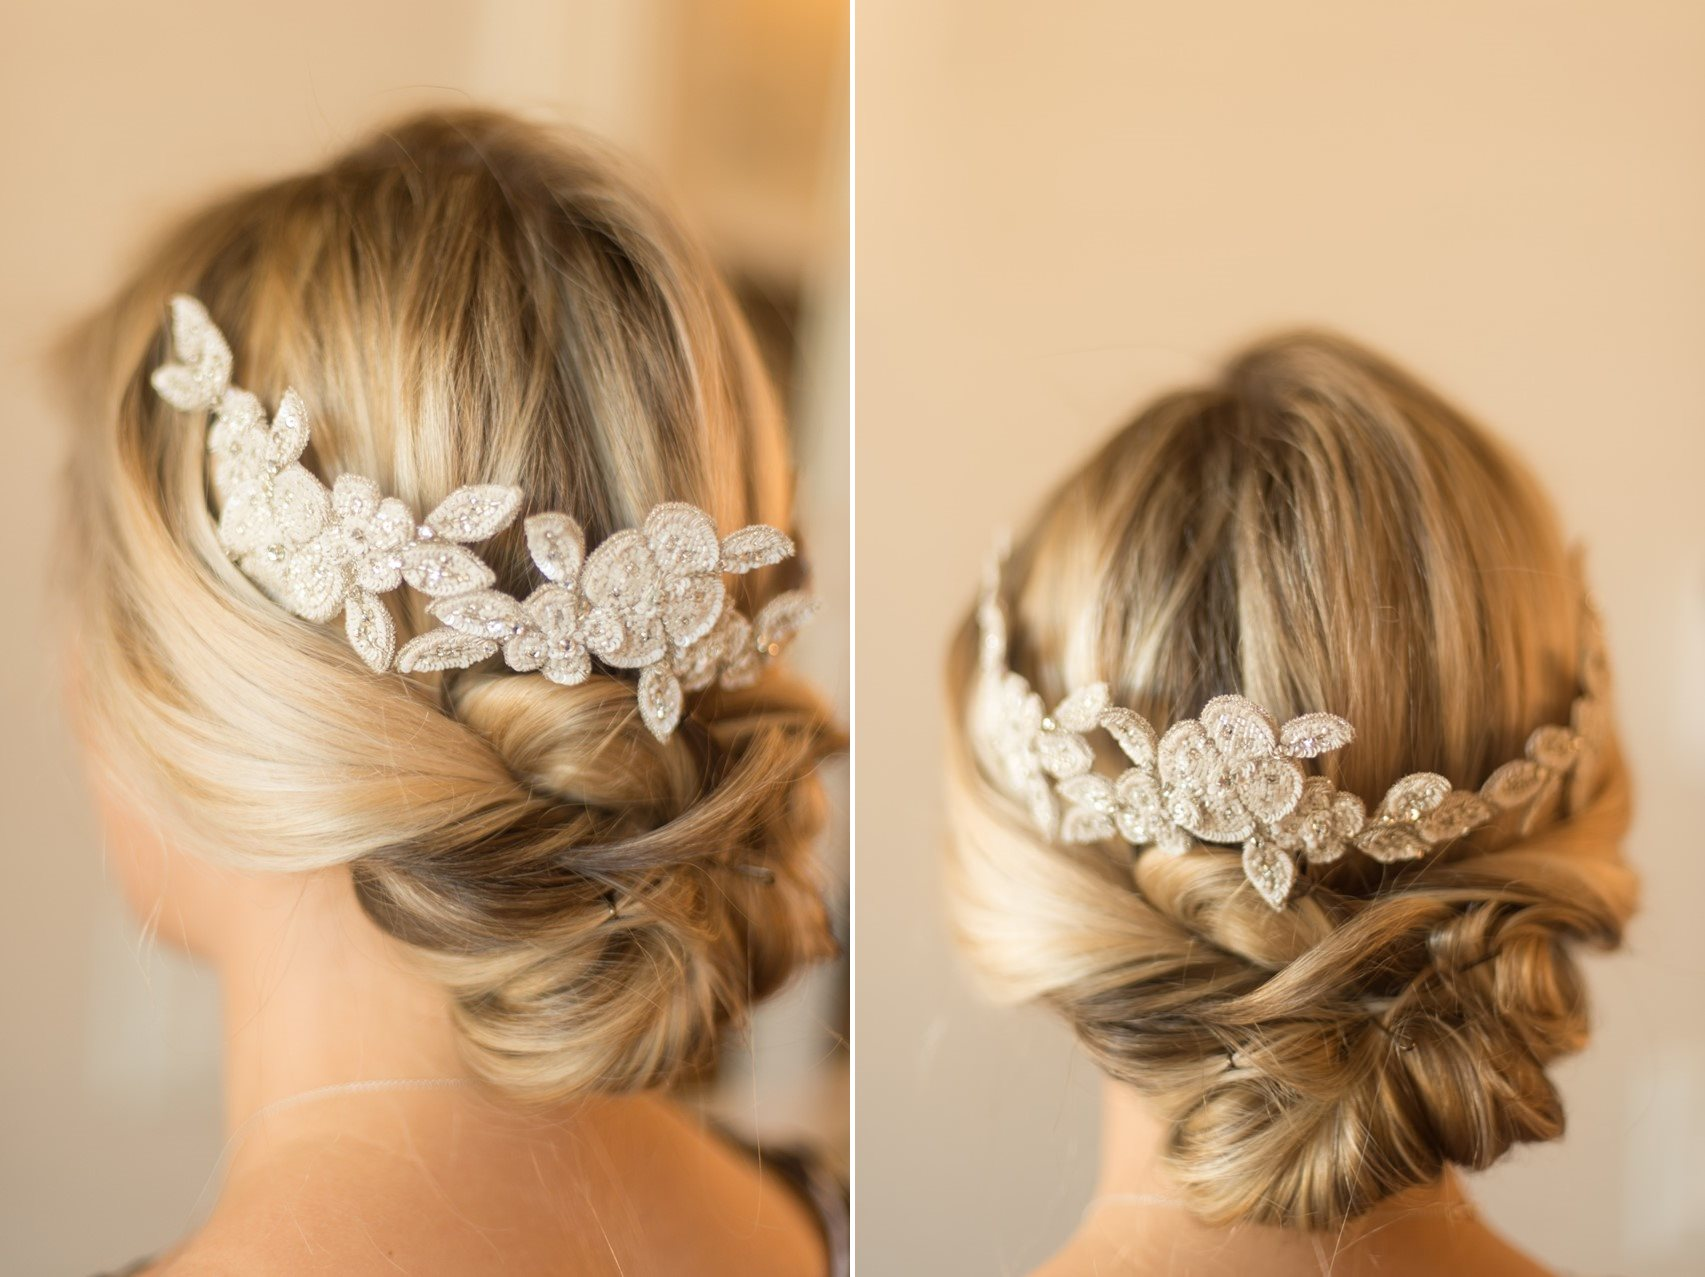 Bridal Hair Accessories From Emmy London Chic Vintage